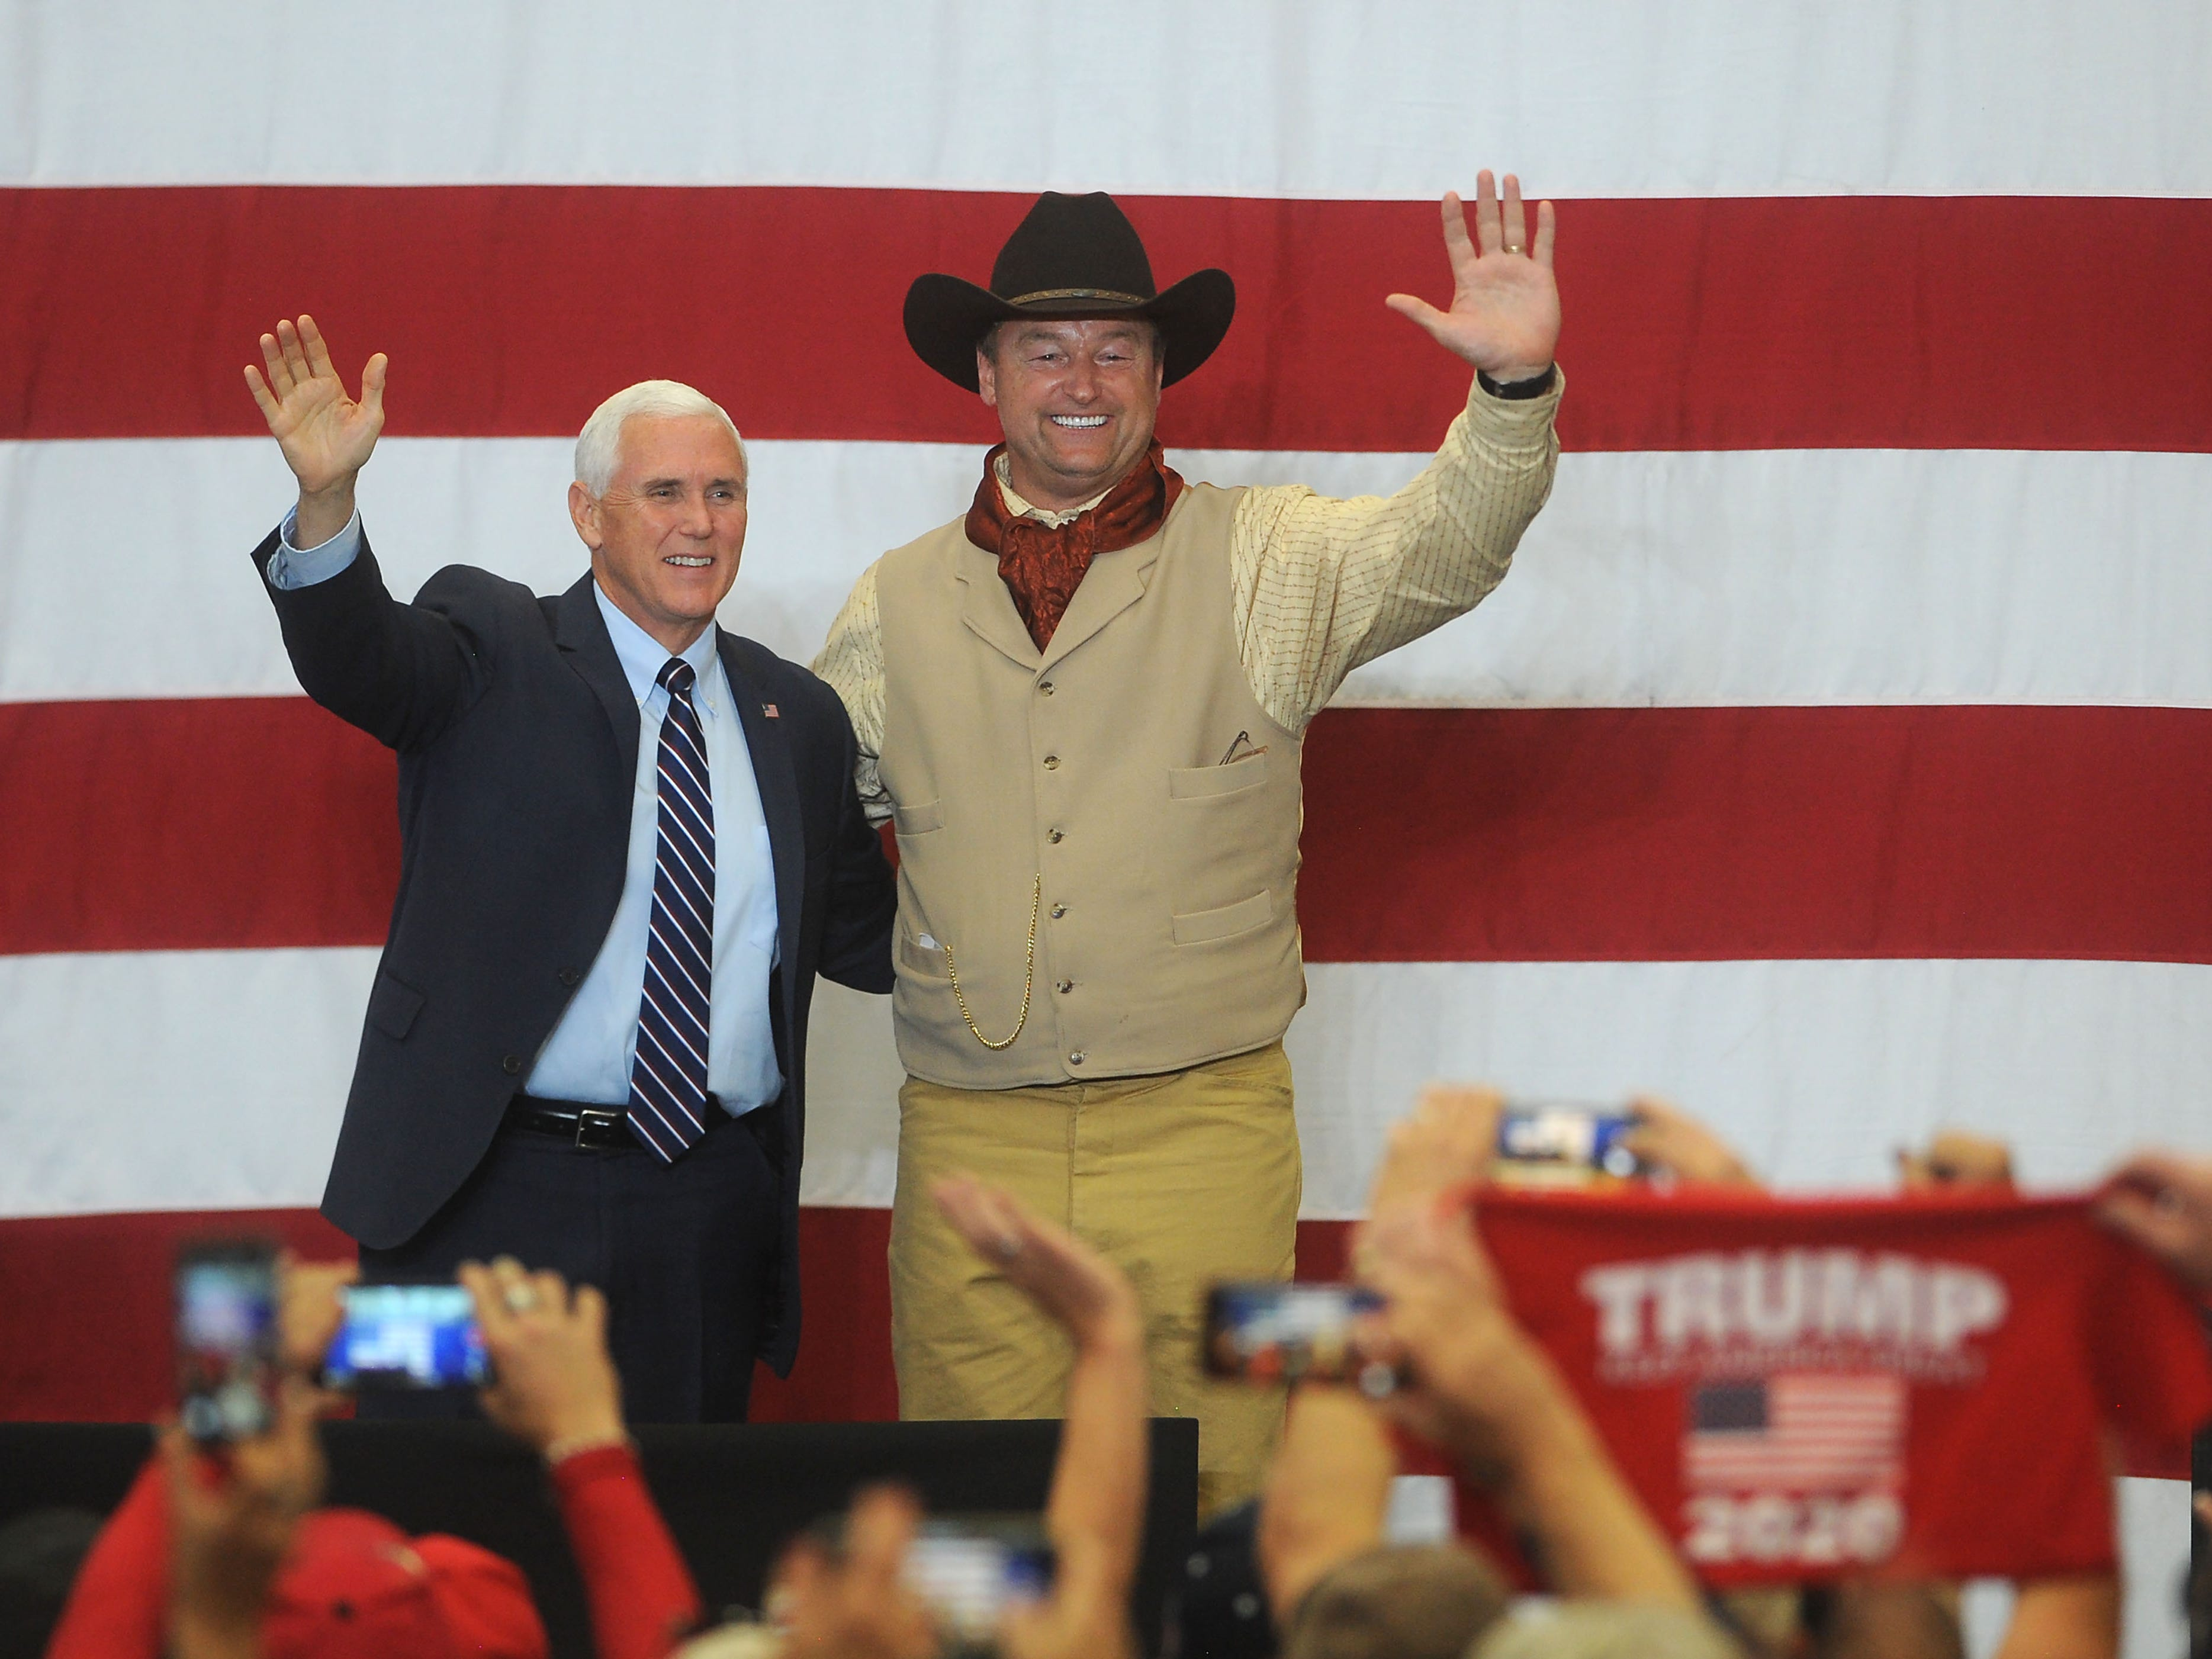 Vice President Mike Pence, left, and U.S. Senator Dean Heller wave to their supporters at the Carson City Airport on Oct. 27, 2018.